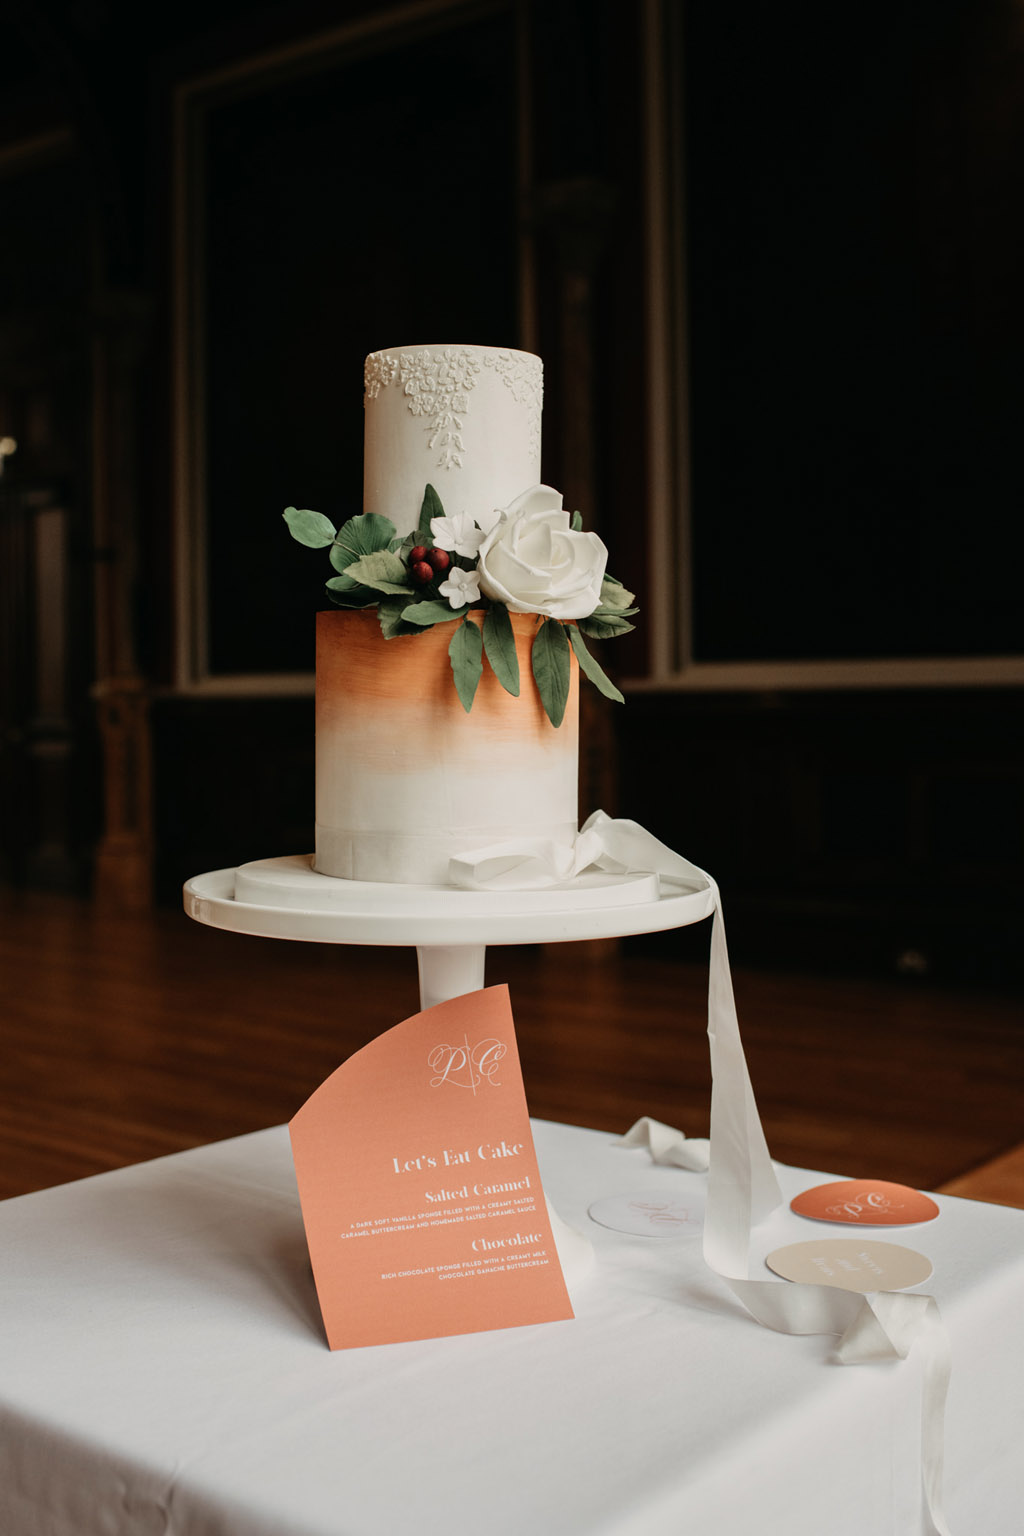 Traditional wedding inspiration with a modern twist, image credit Lottie Photography (5)